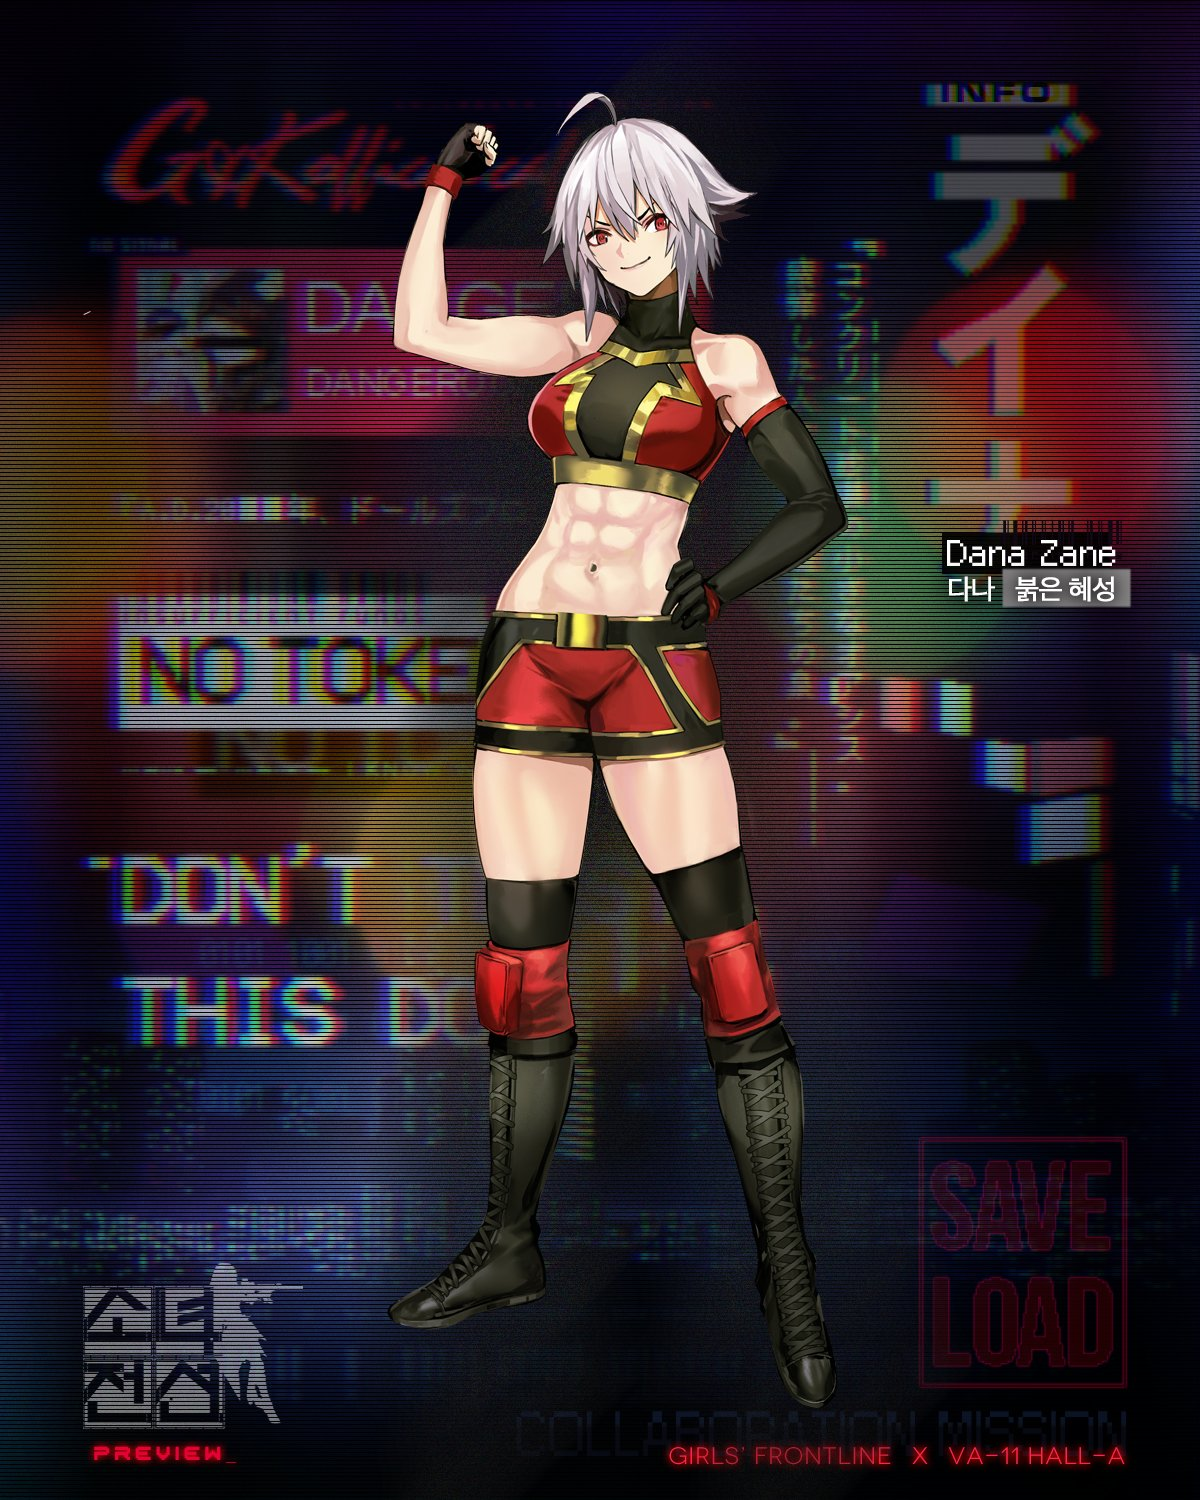 1girl abs ahoge bike_shorts black_footwear black_legwear boots breasts character_name clenched_hand cross-laced_footwear dana_zane fist_pump full_body girls_frontline gloves hand_on_hip highres knee_boots knee_pads lace-up_boots medium_breasts midriff mismatched_gloves navel official_art red_eyes short_hair silver_hair solo sports_bra standing thigh-highs thigh_boots thighs va-11_hall-a wrestling_outfit